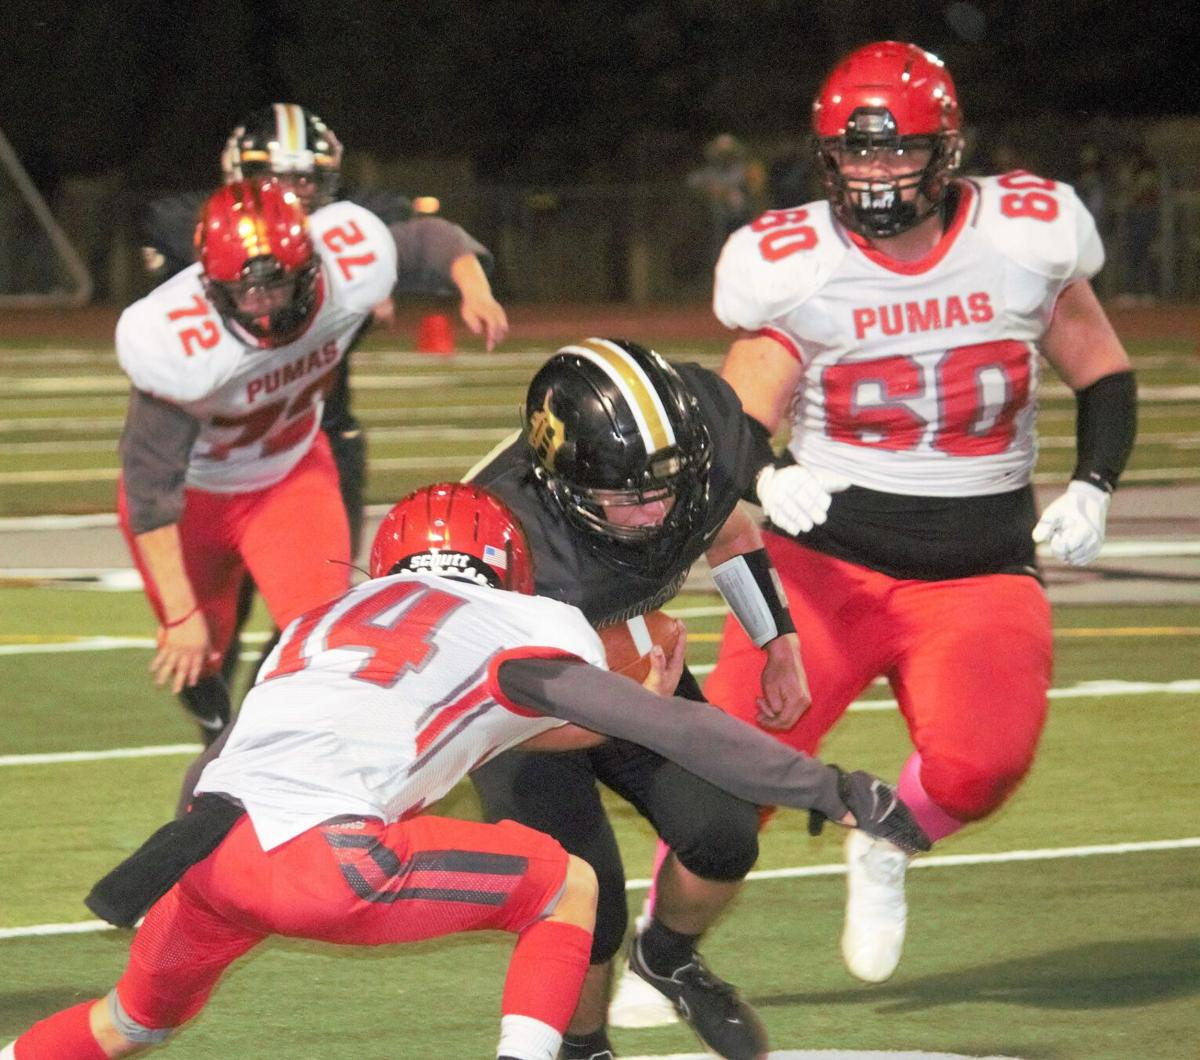 Bulldogs knockoff Bisbee 24-21: The Pick heads back to Douglas